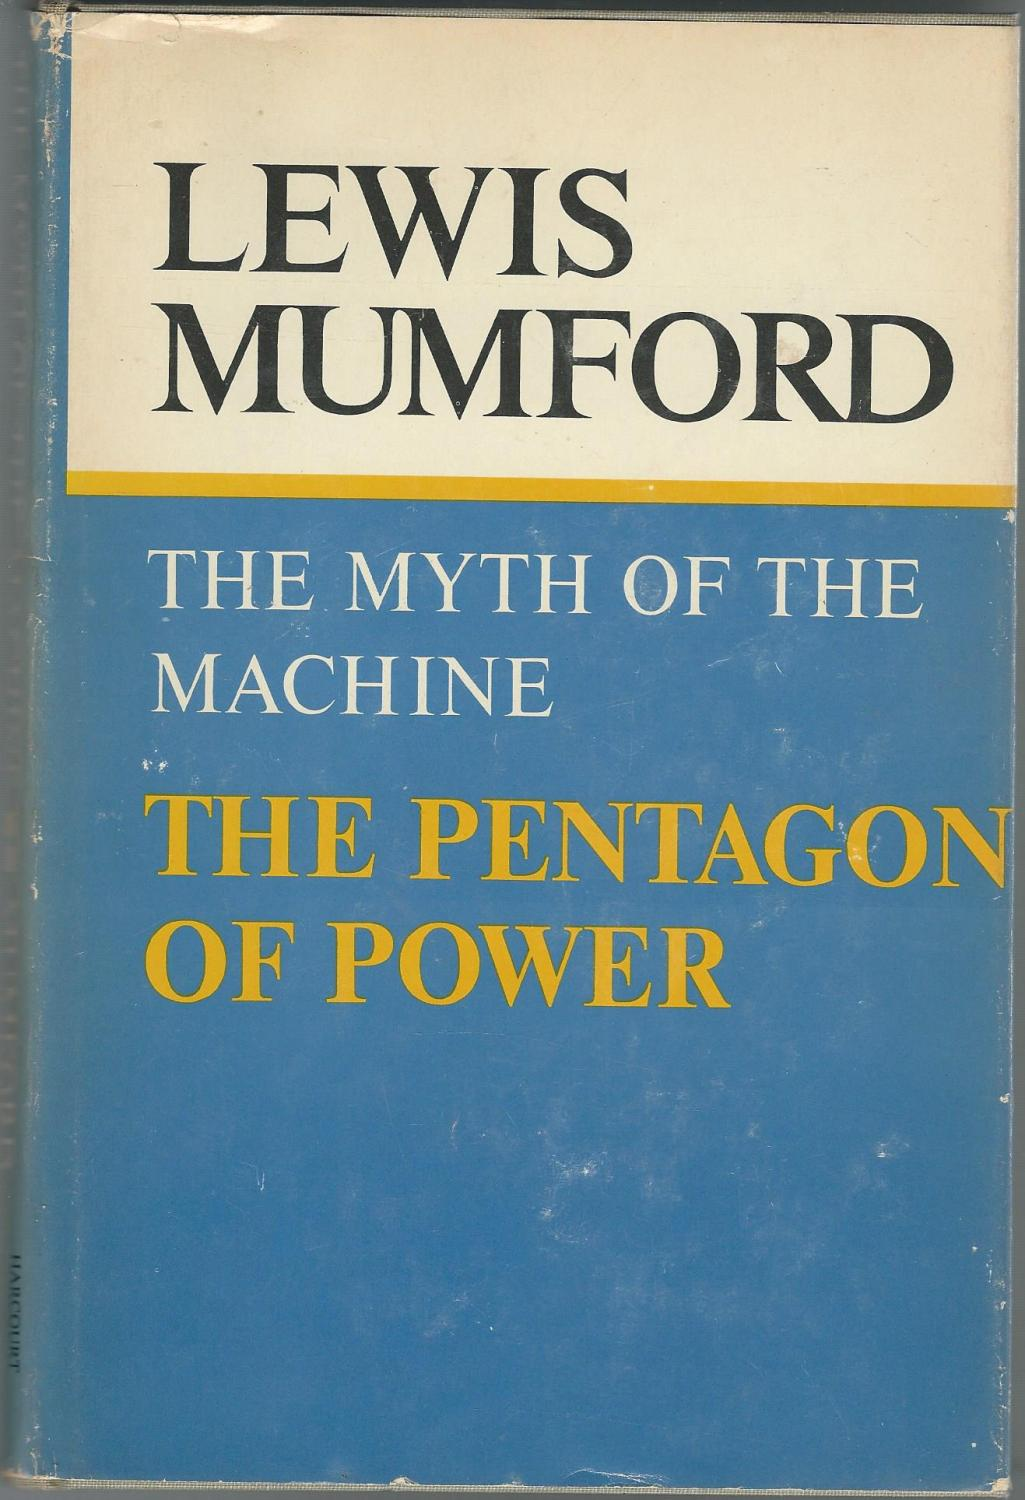 cover of The Myth of the Machine The Pentagon of Power by Lewis Mumford